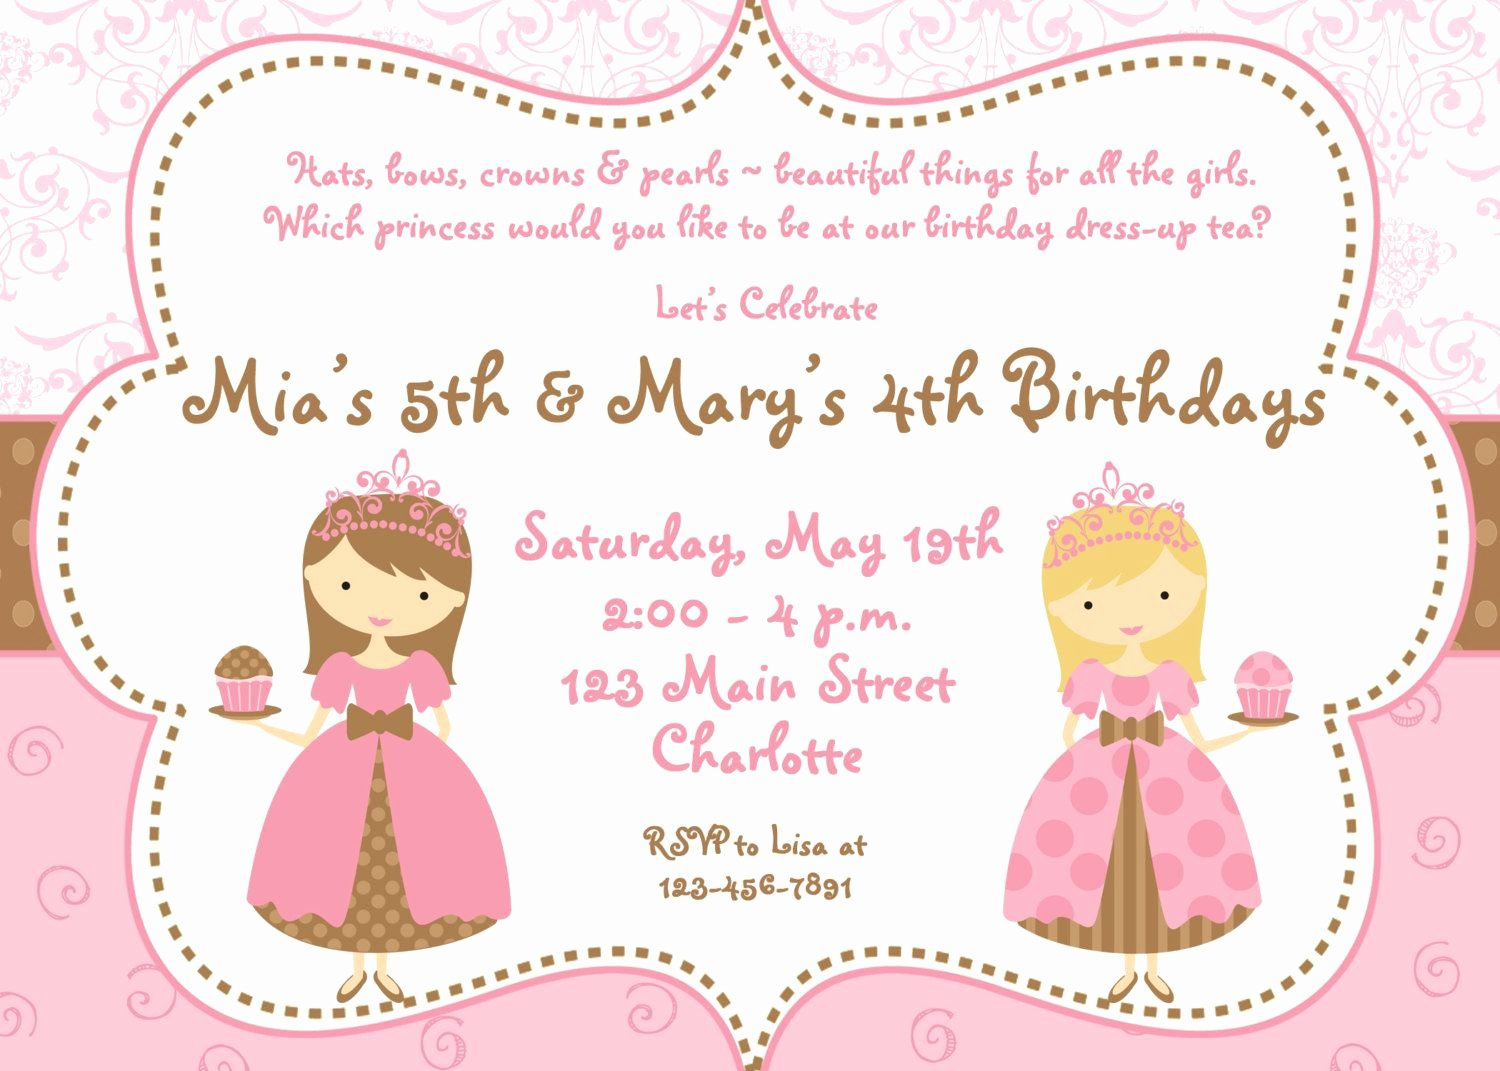 Princess Party Invitation Template Luxury Tea Party Birthday Invitation Cupcake Party Princess